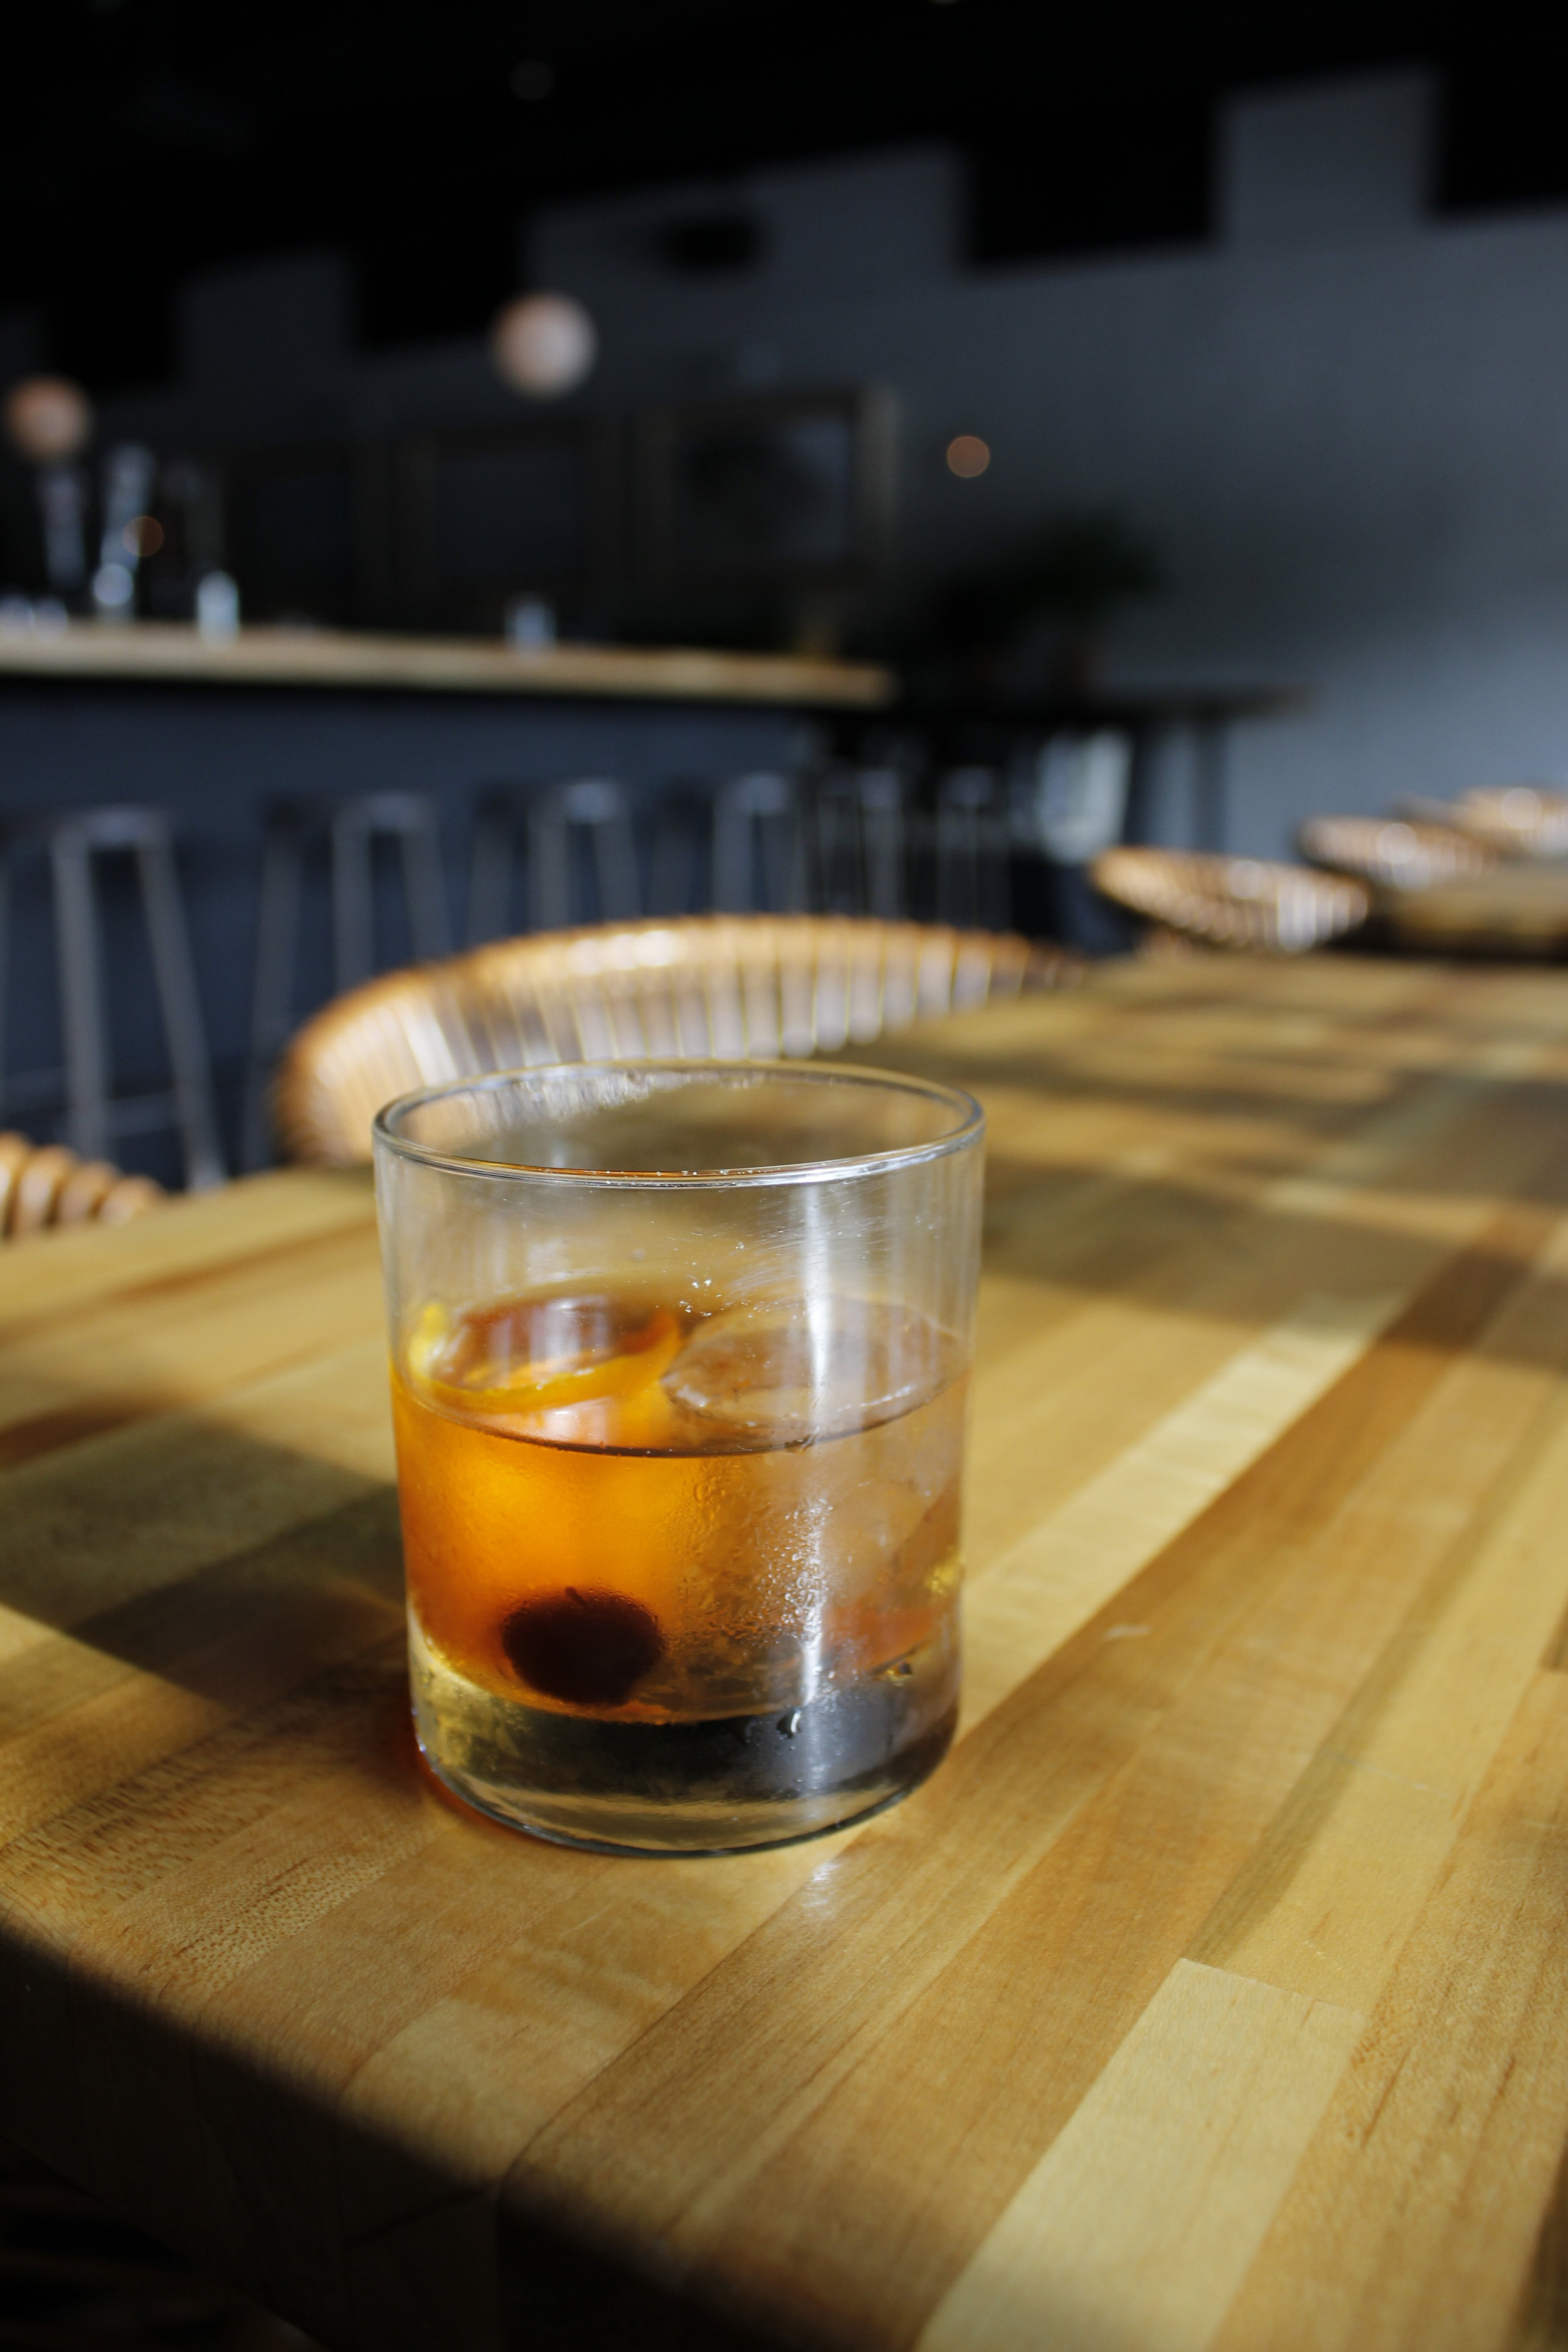 Old Fashioned - Four Roses Bourbon, Angostura, sugar, orange, and cherry. A classic you can't go wrong with, and a great way to introduce yourself to bourbon.